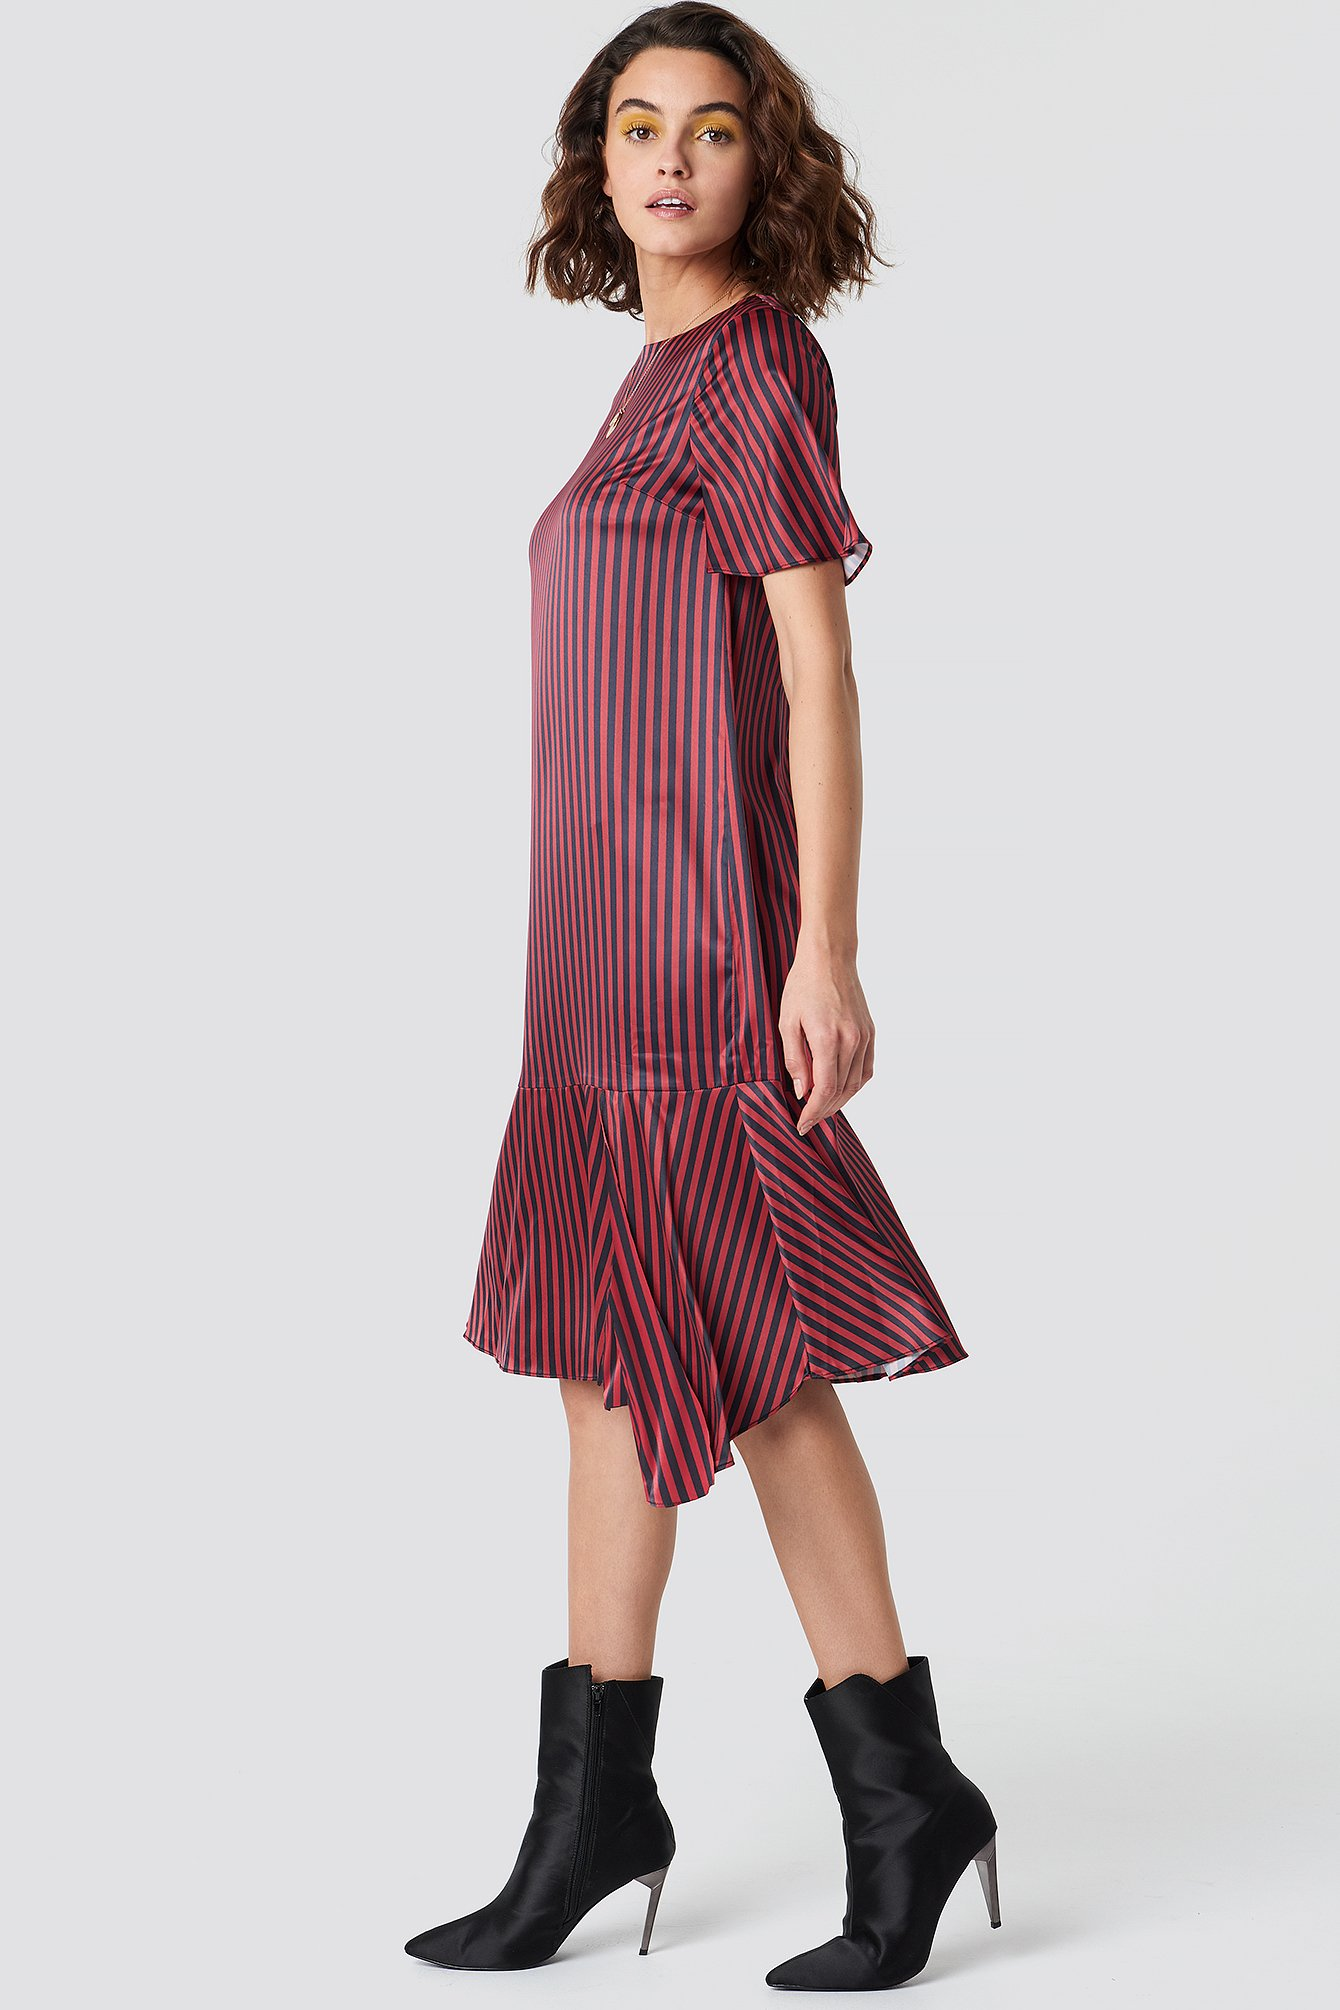 emilie briting x na-kd -  Pinstripe Satin Dress - Red